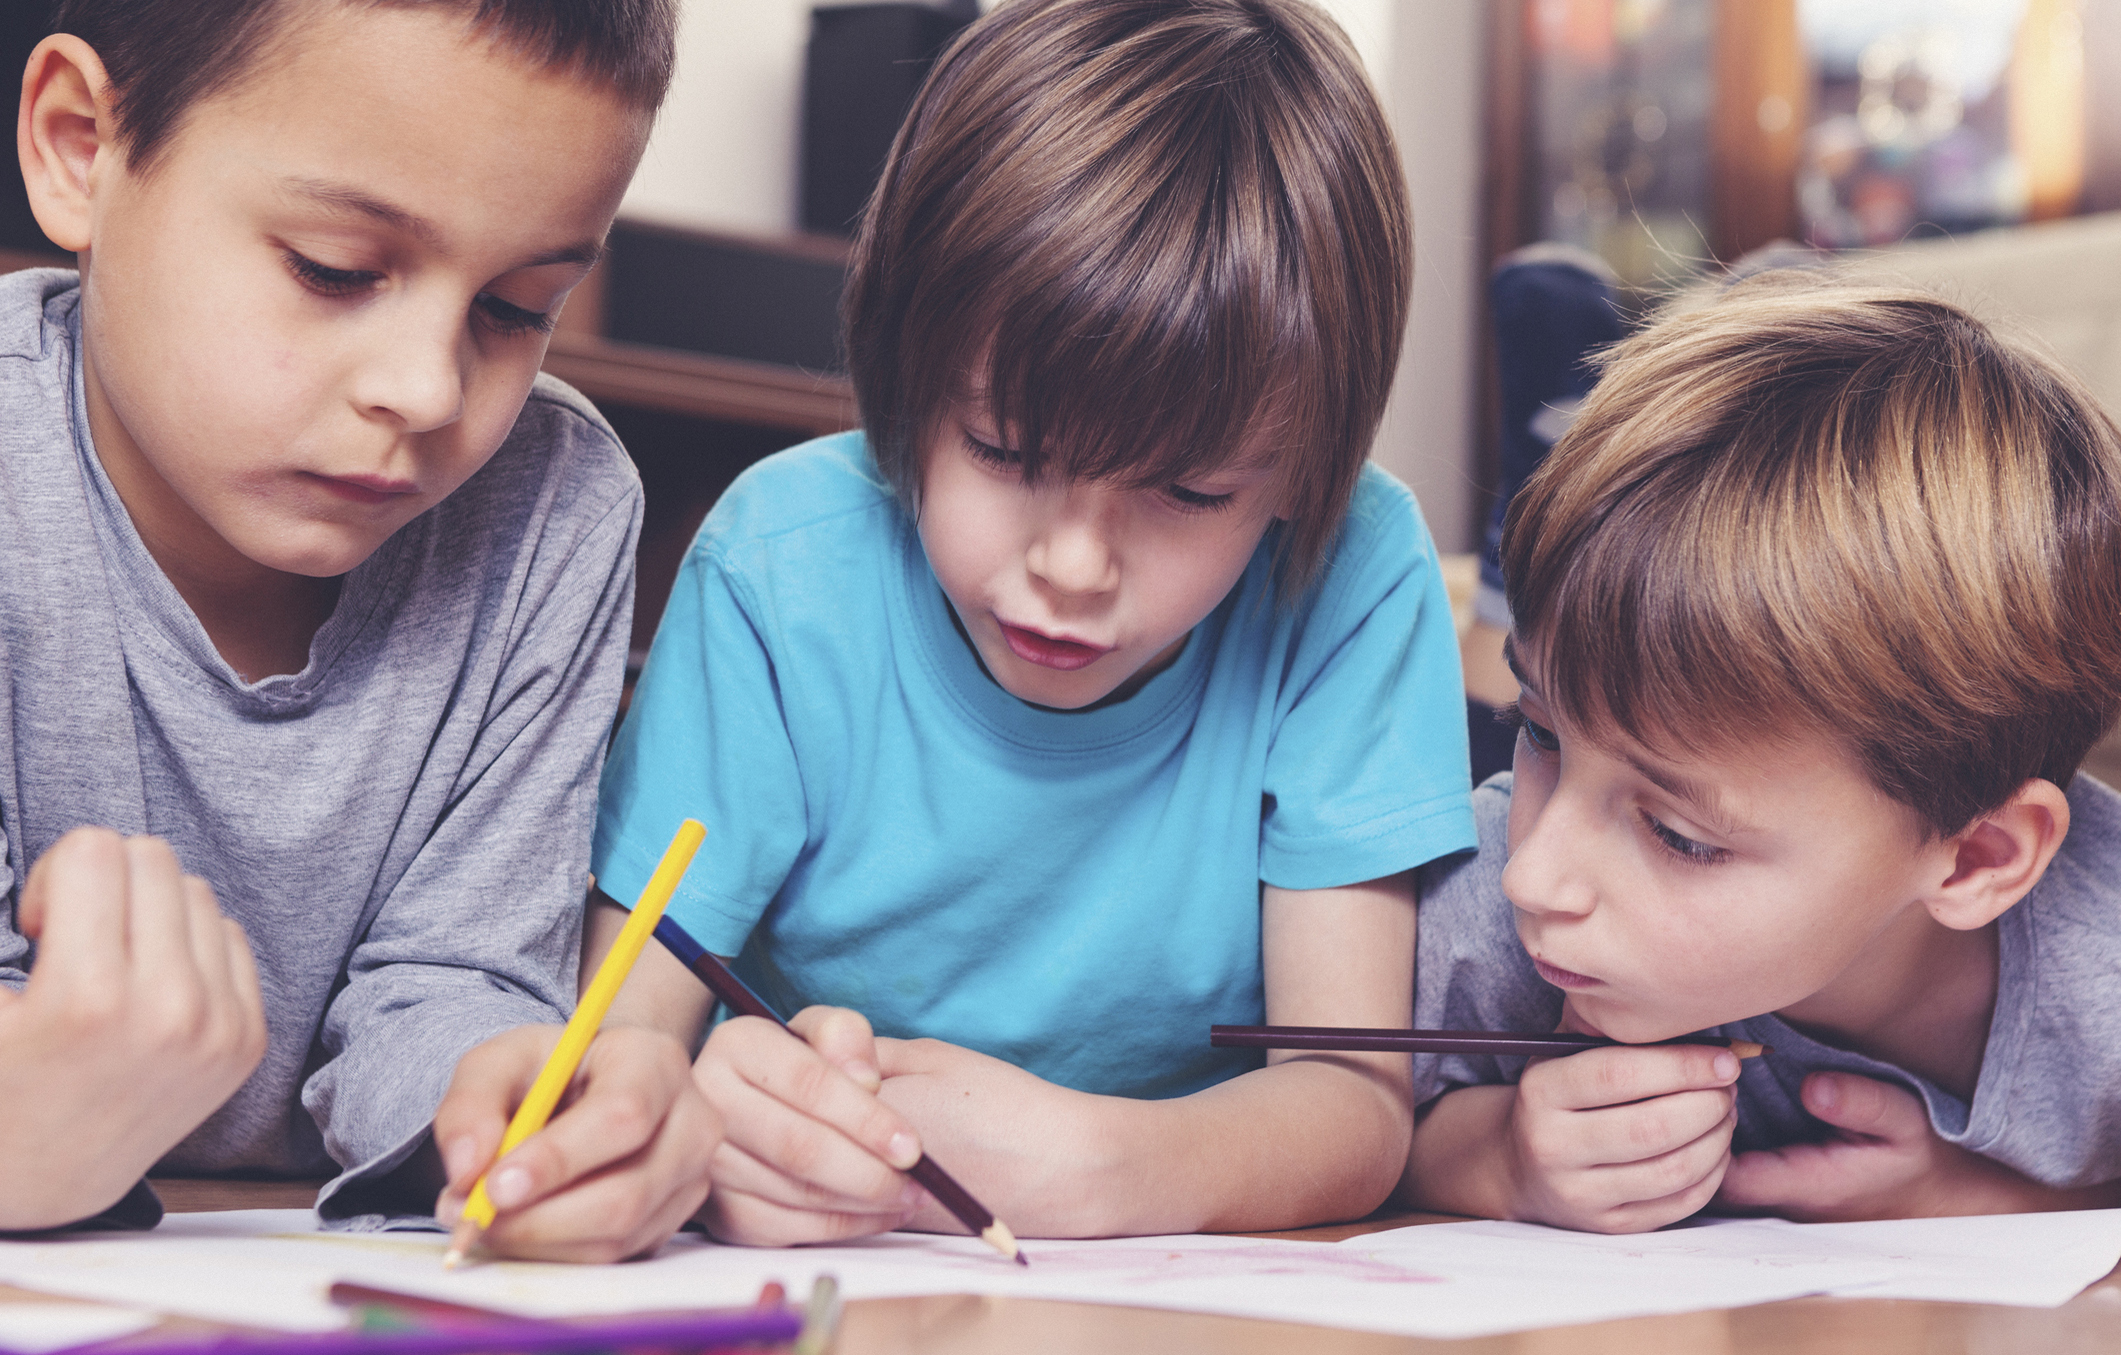 From Sunday School to Small Groups: Why and How